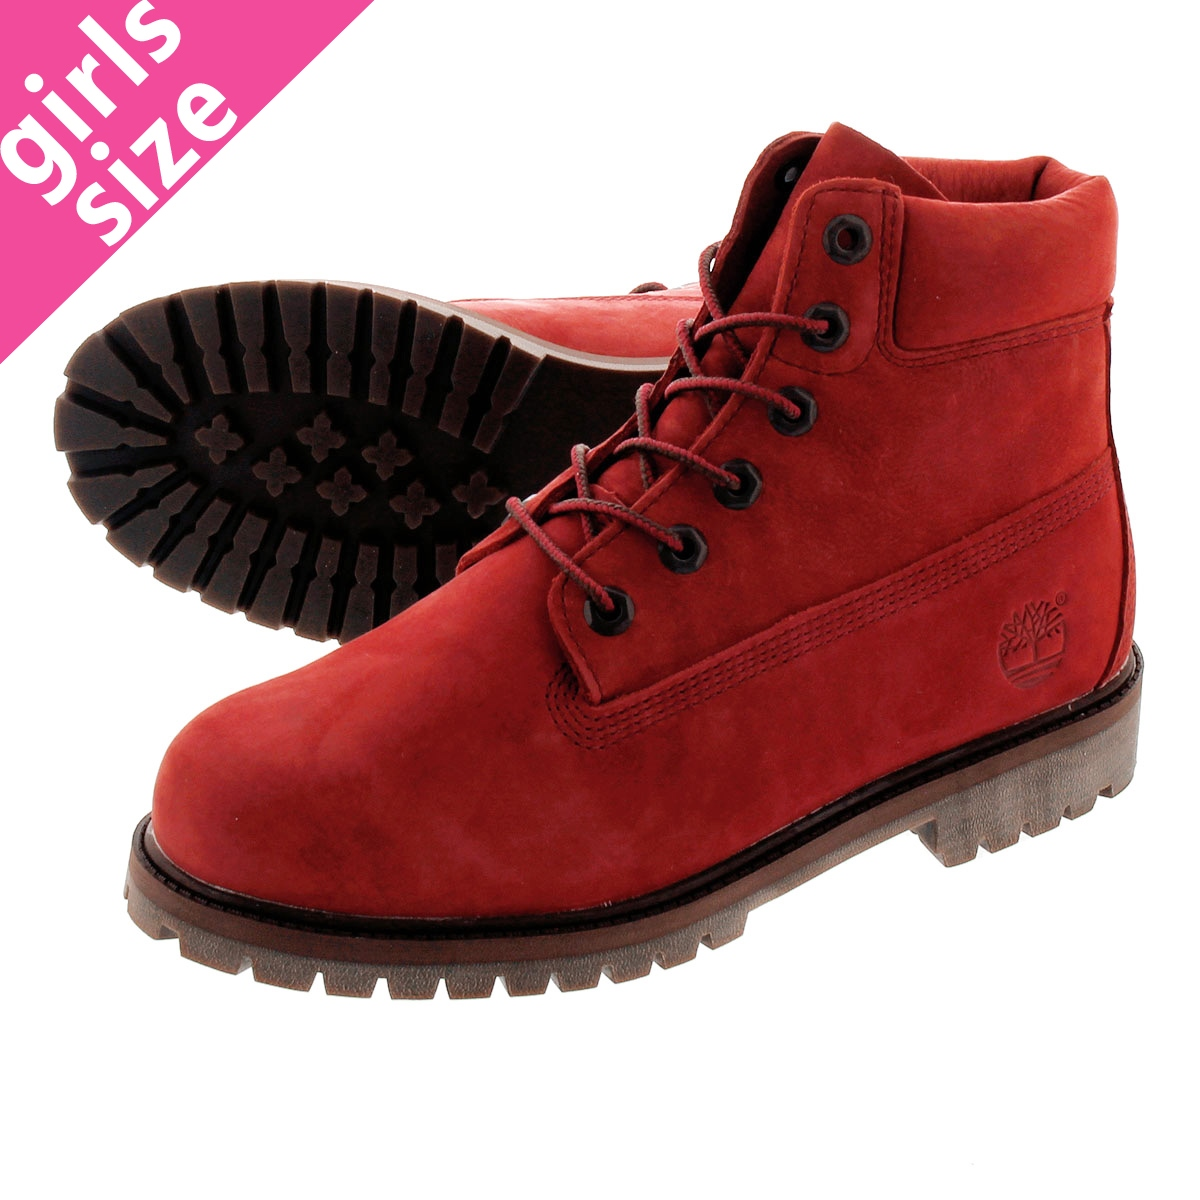 vast selection new design buying new 6 inches of TIMBERLAND 6inch PREMIUM WP BOOT Timberland premium waterproof  boots DARK RED a2954